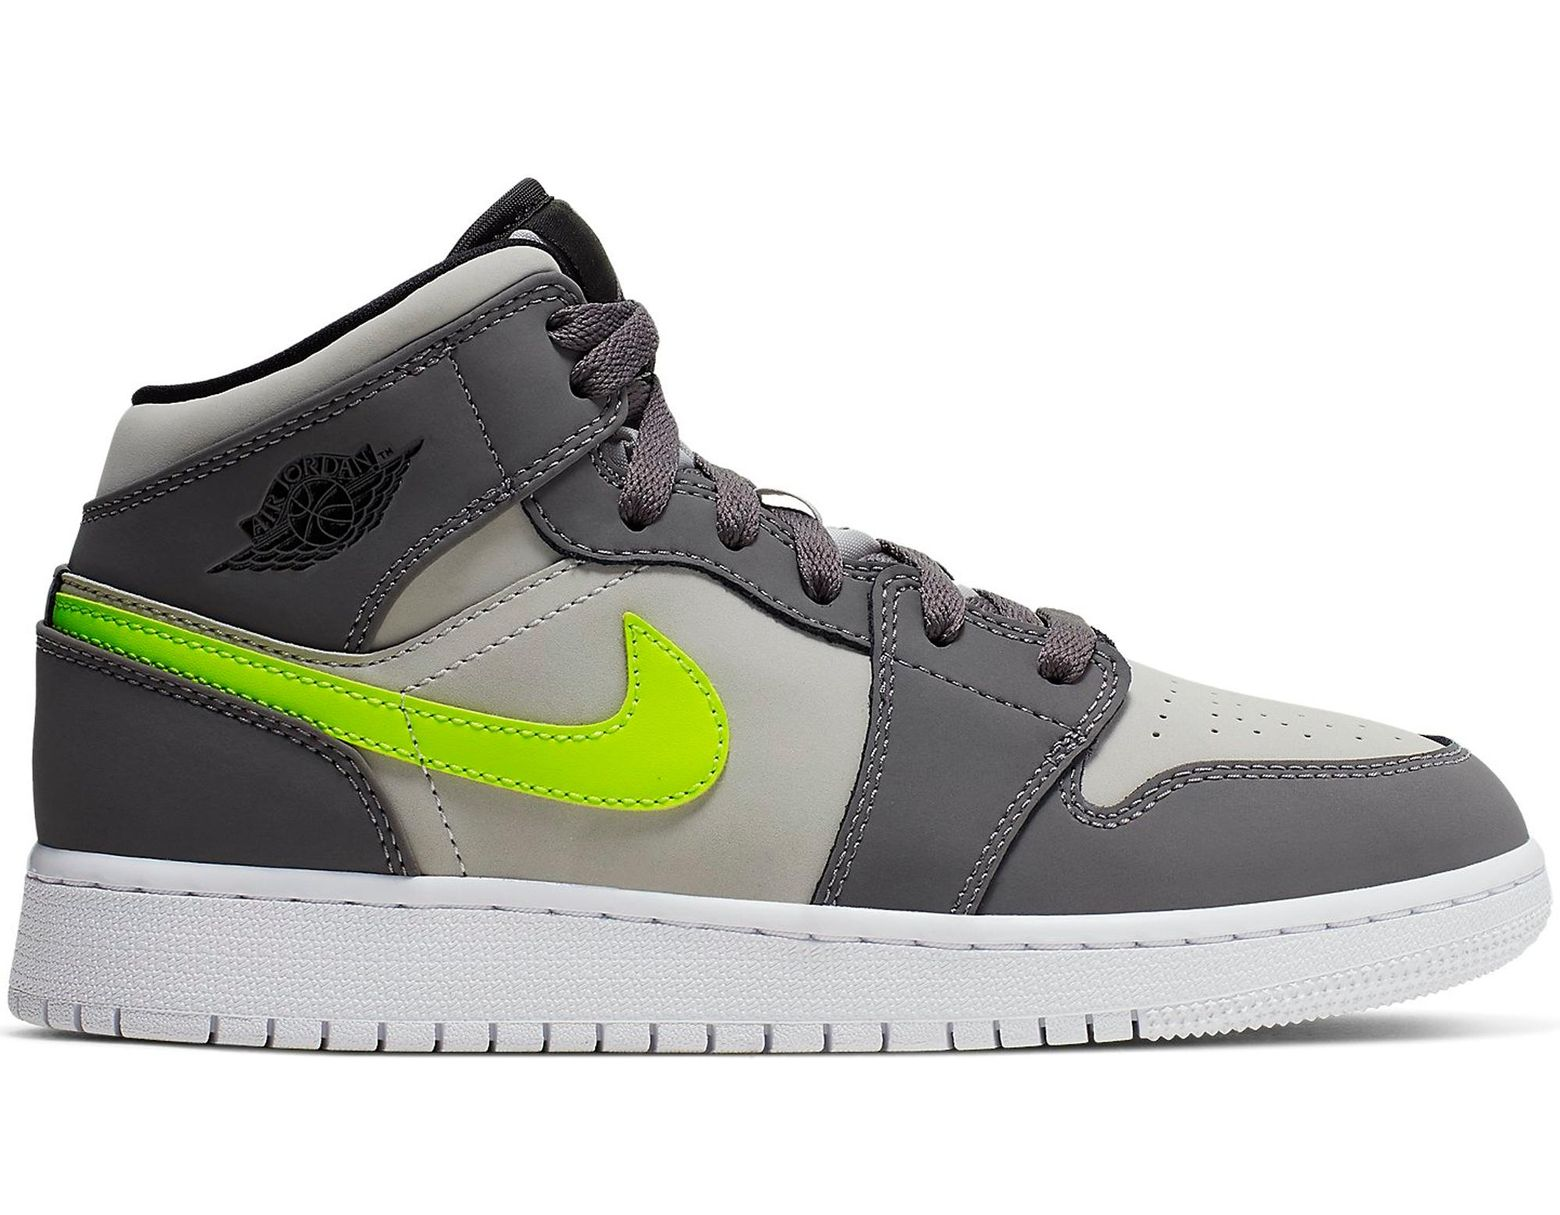 a5efceee Nike 1 Mid Gunsmoke Volt (gs) in Gray for Men - Save 17% - Lyst